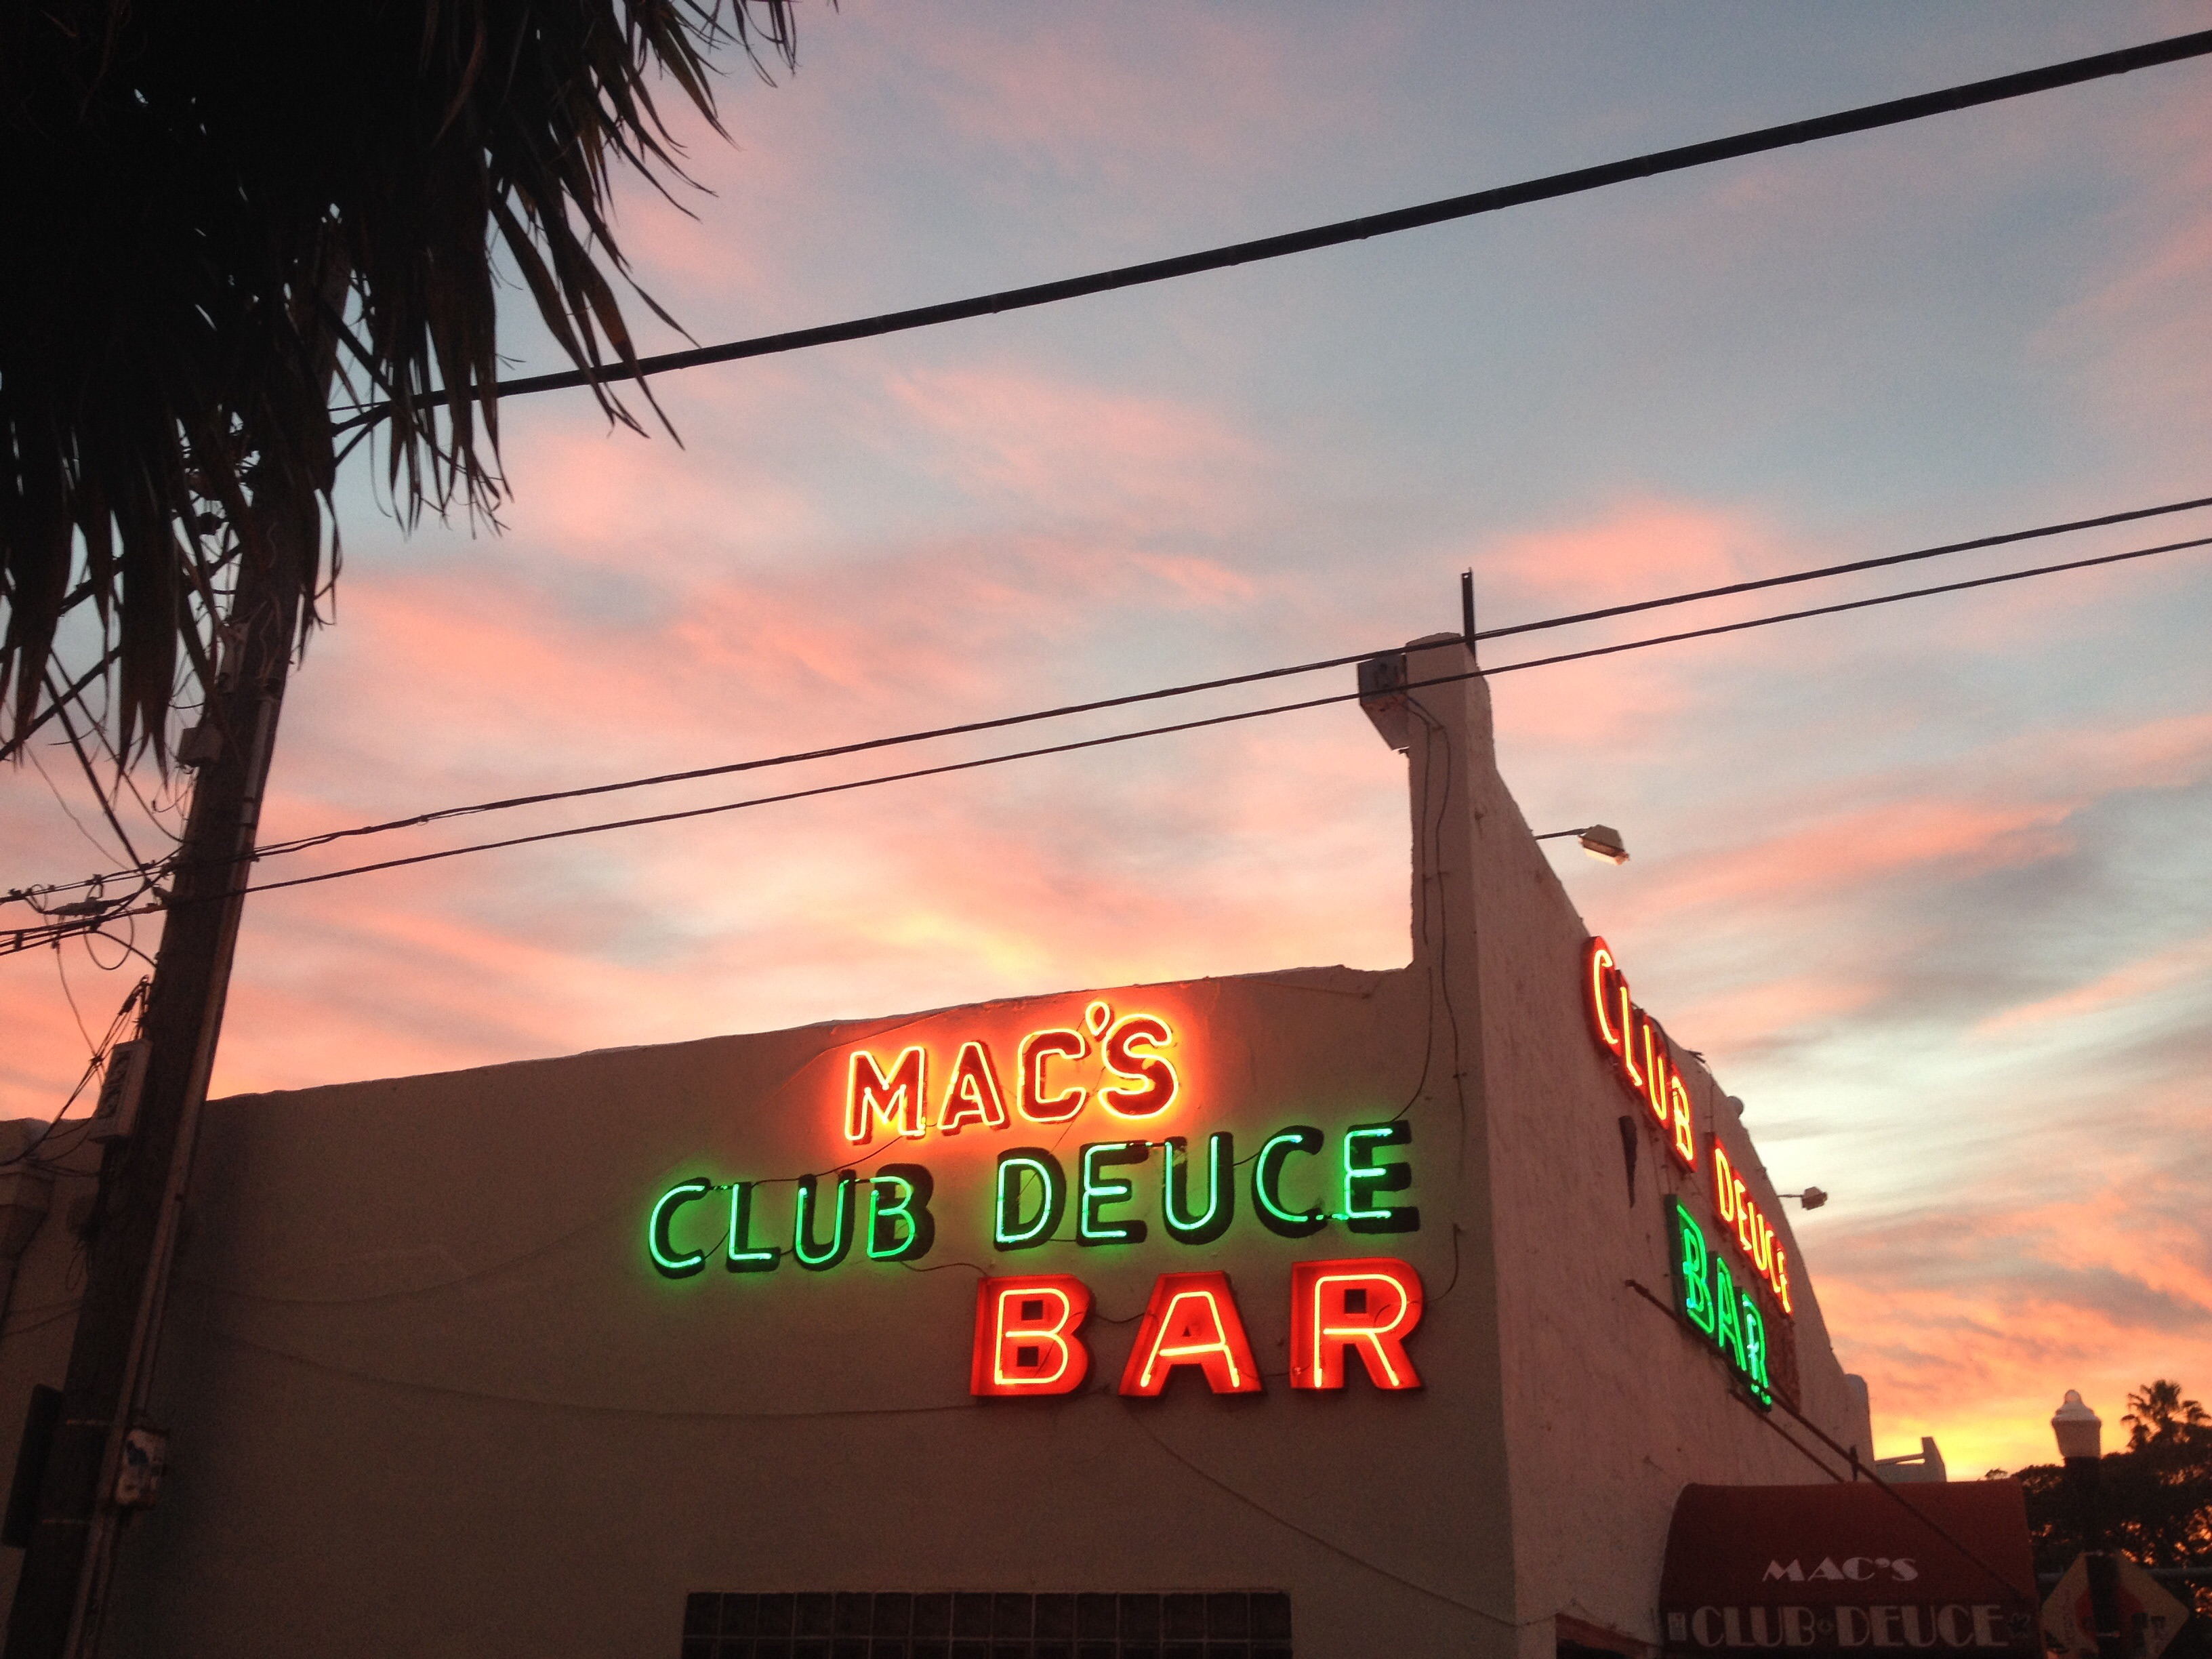 Macs Club Deuce Bar